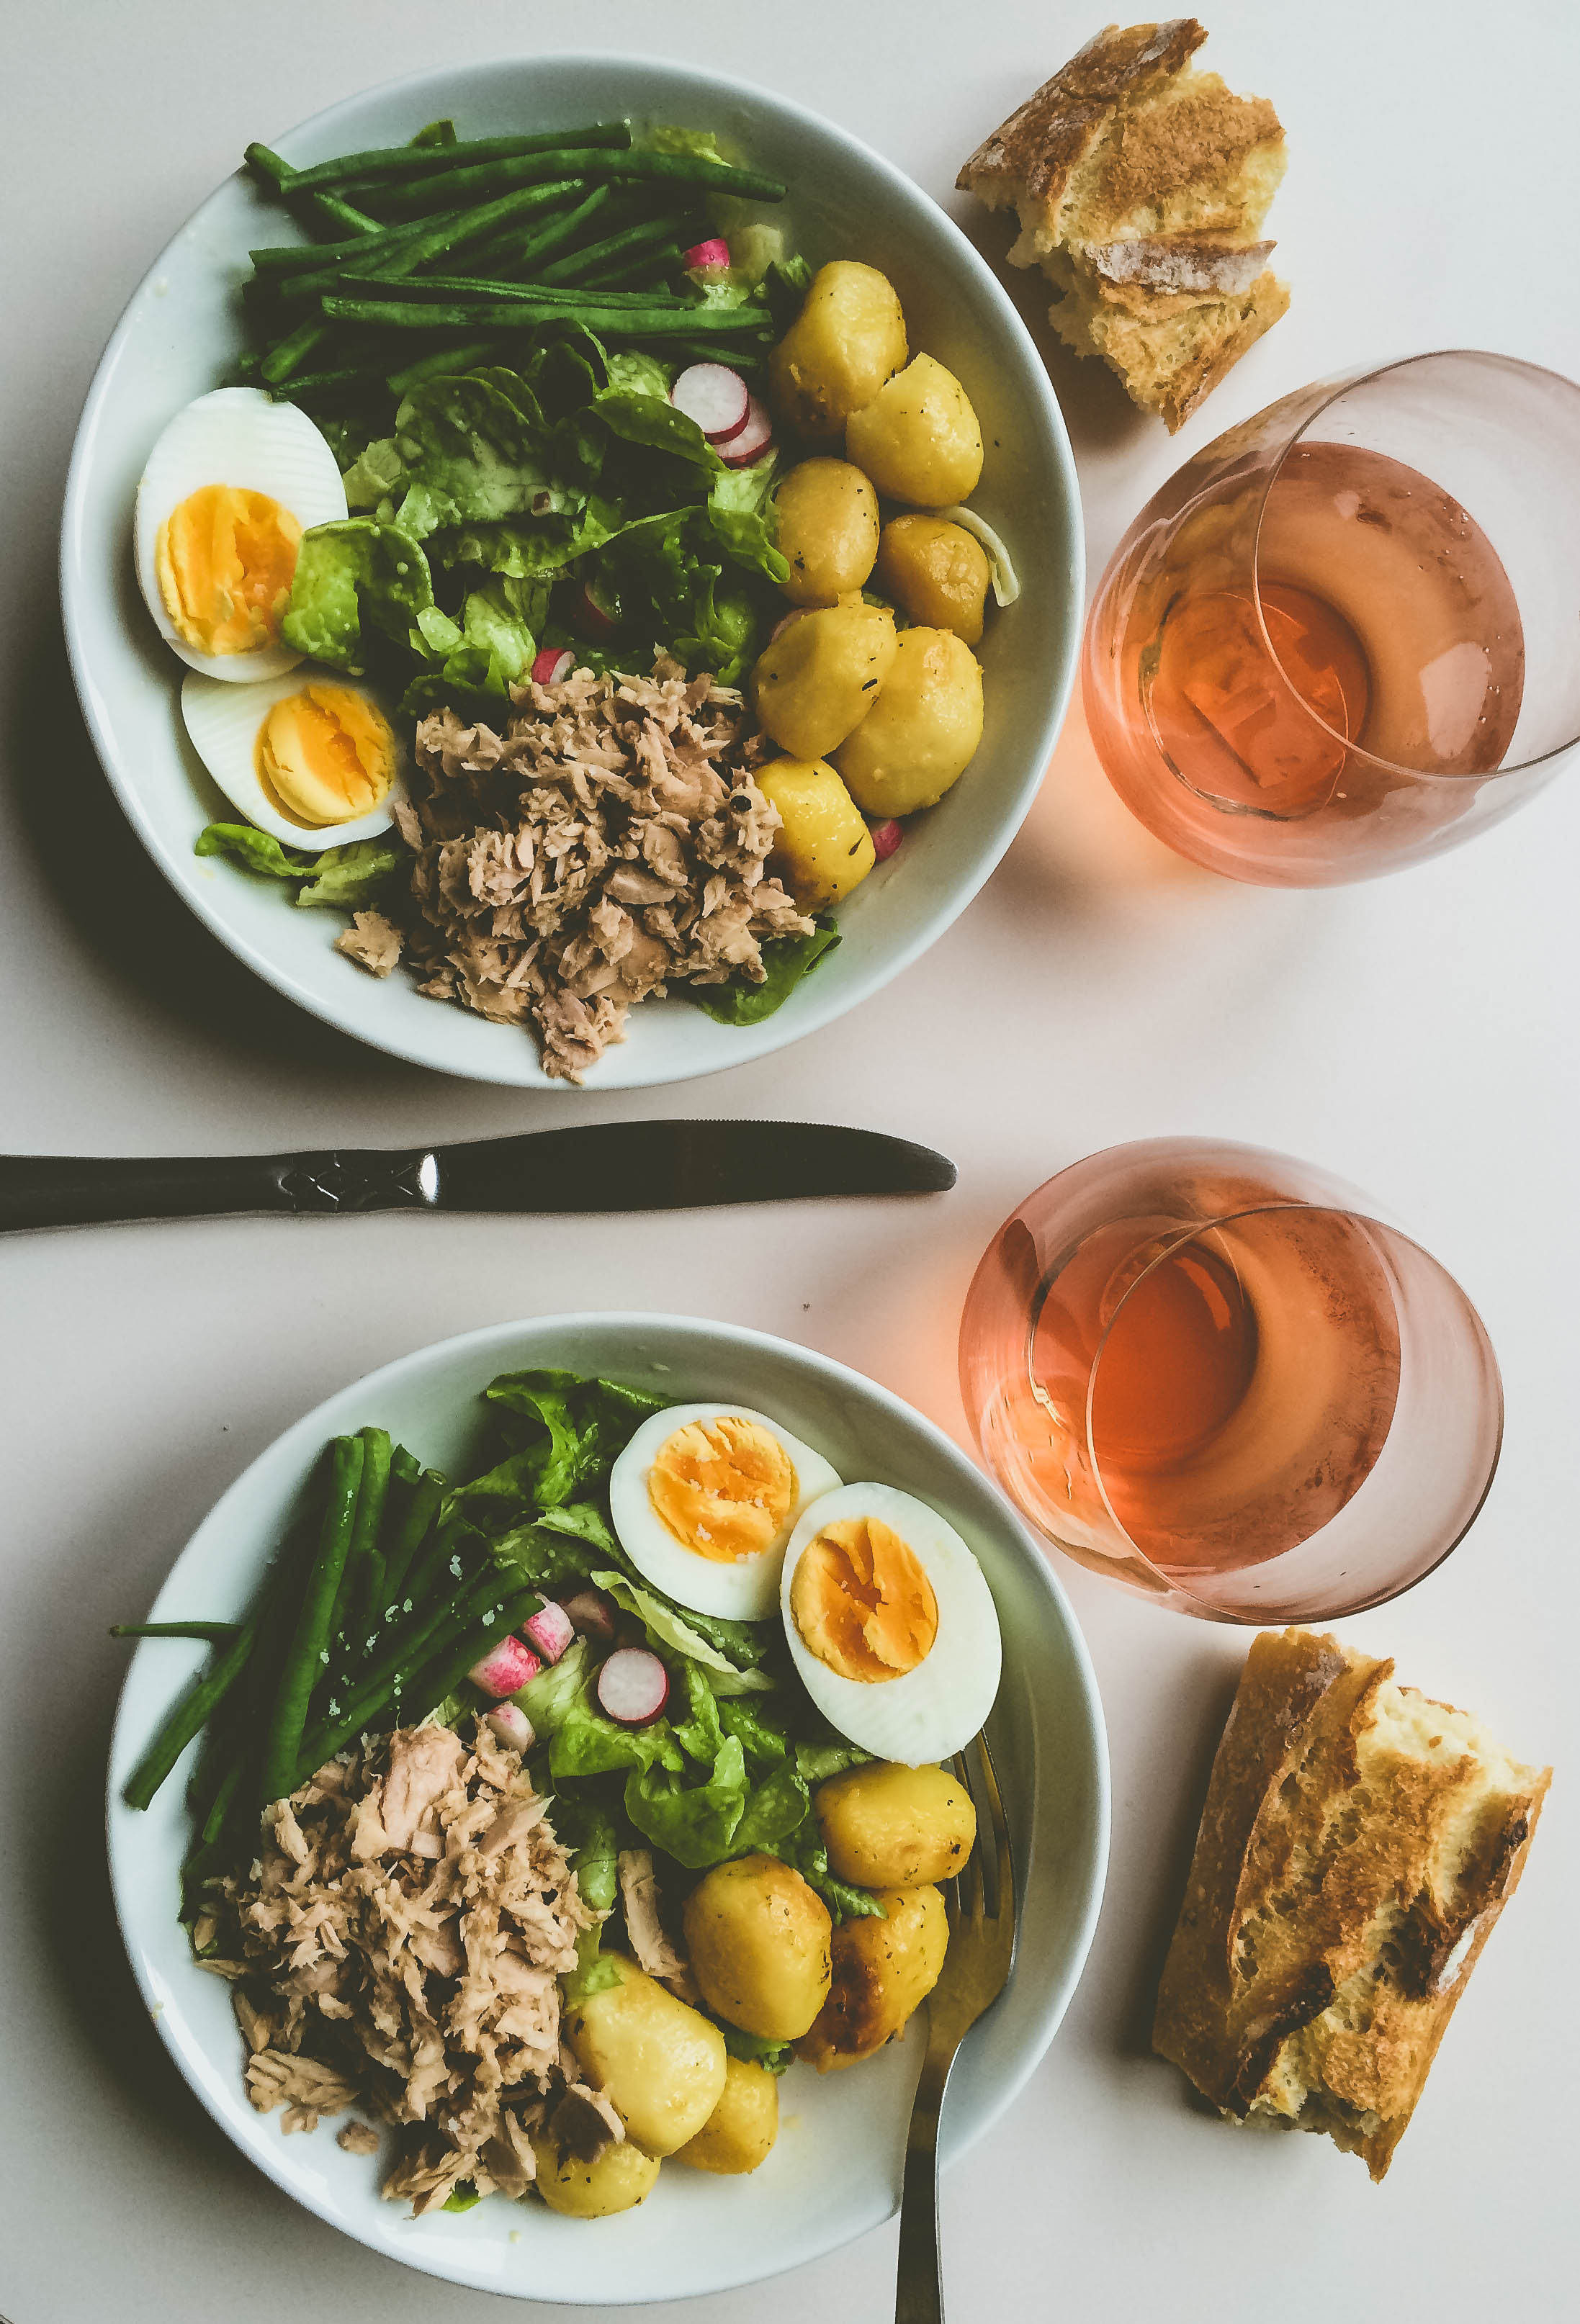 A bright salad made of tuna, potatoes, egg, radishes, green beans with salt and homemade dressing. Baguette and rosé on the side.